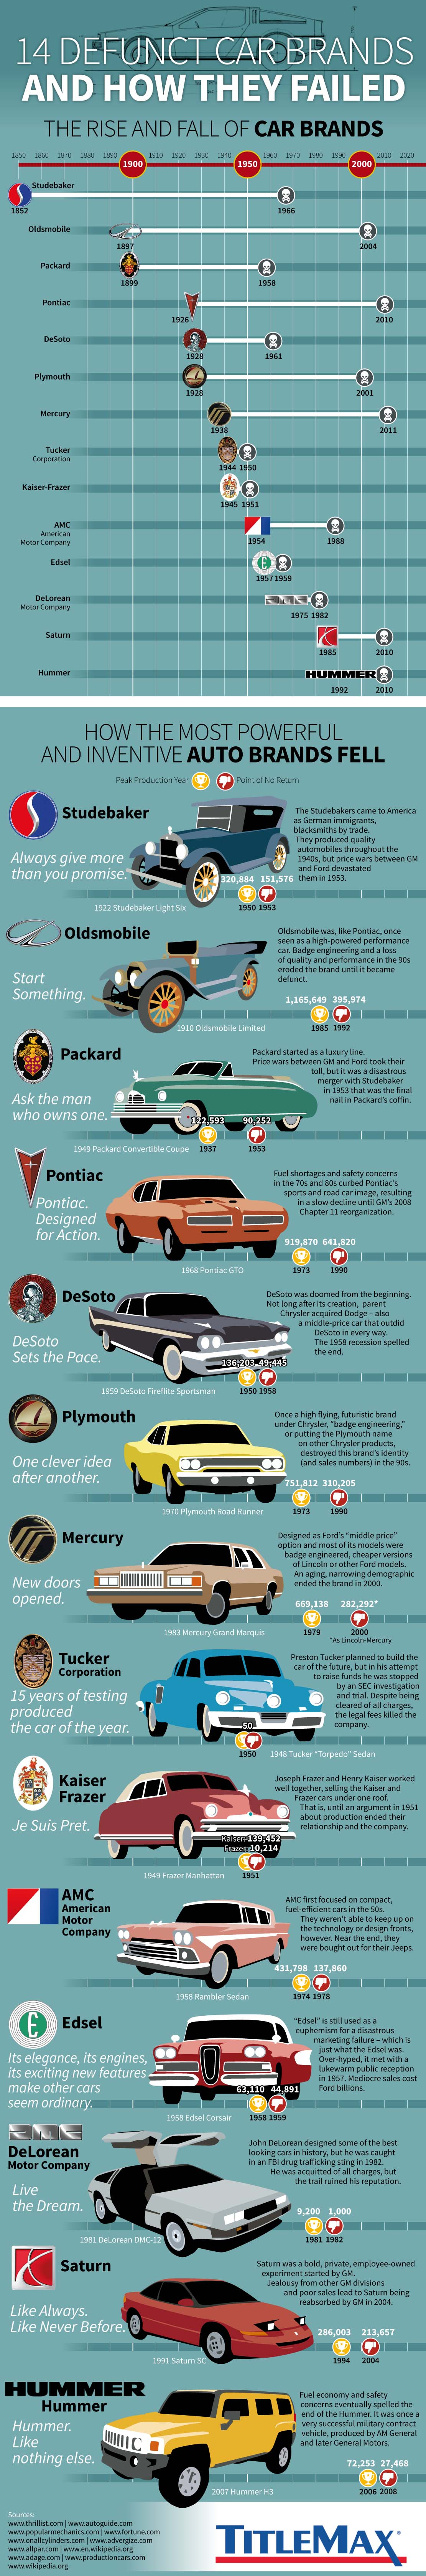 14 defunct car brands and how they failed infographic. Black Bedroom Furniture Sets. Home Design Ideas